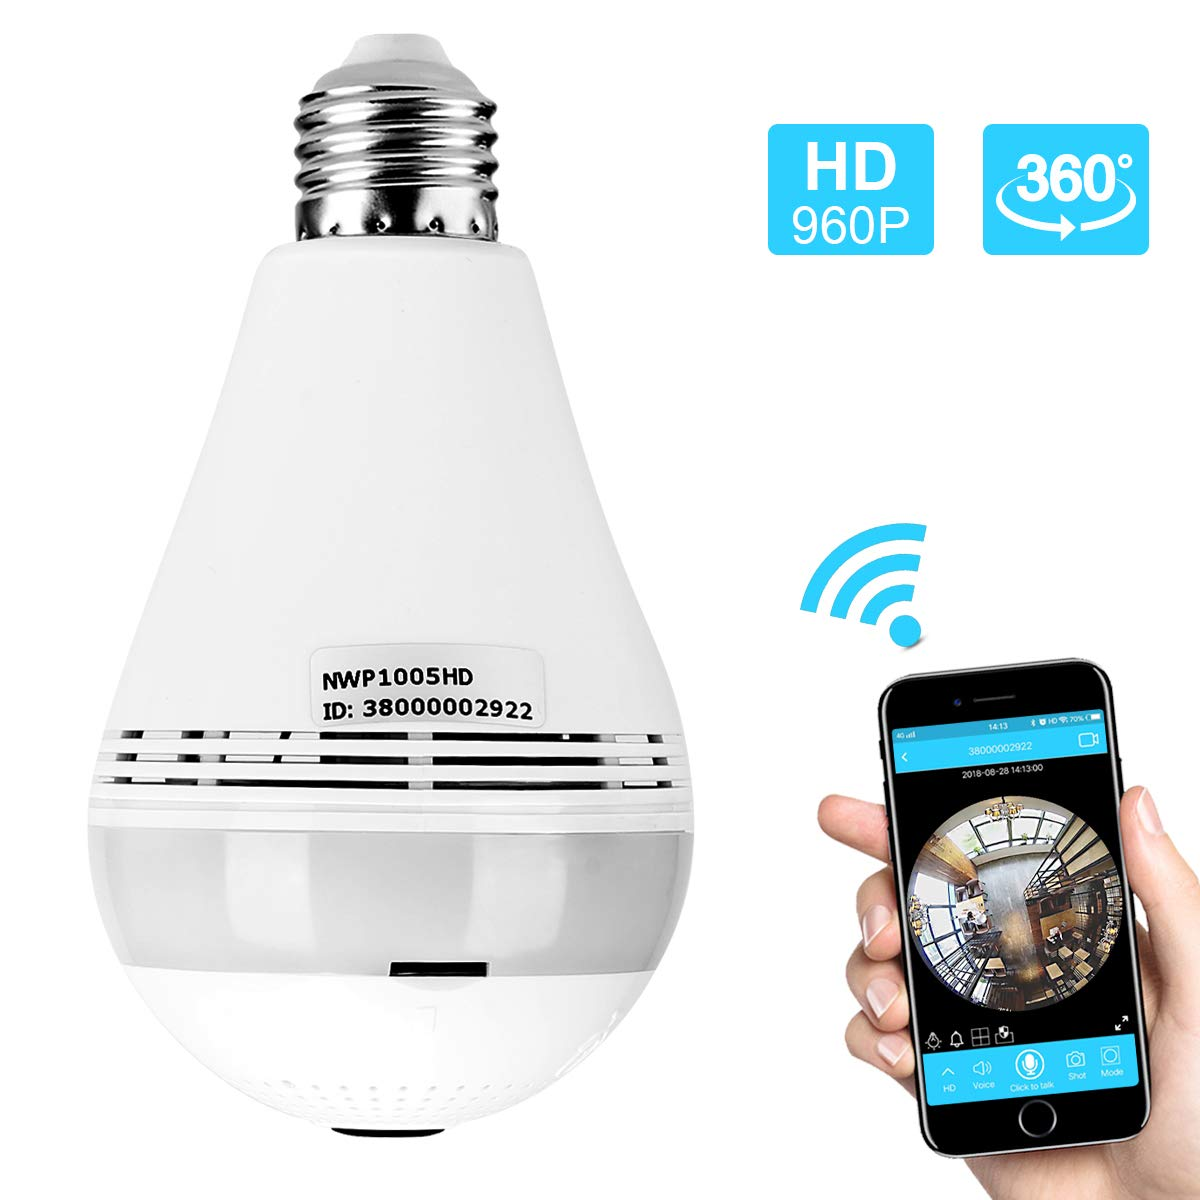 Skymee WiFi Light Bulb Camera Night Vision VR Panoramic Wireless Outdoor Security Camera Bulb with 360 Degree Fisheye Lens Wireless Remote Home Surveillance System for Baby Pet Monitor by iOS Android by SKYMEE